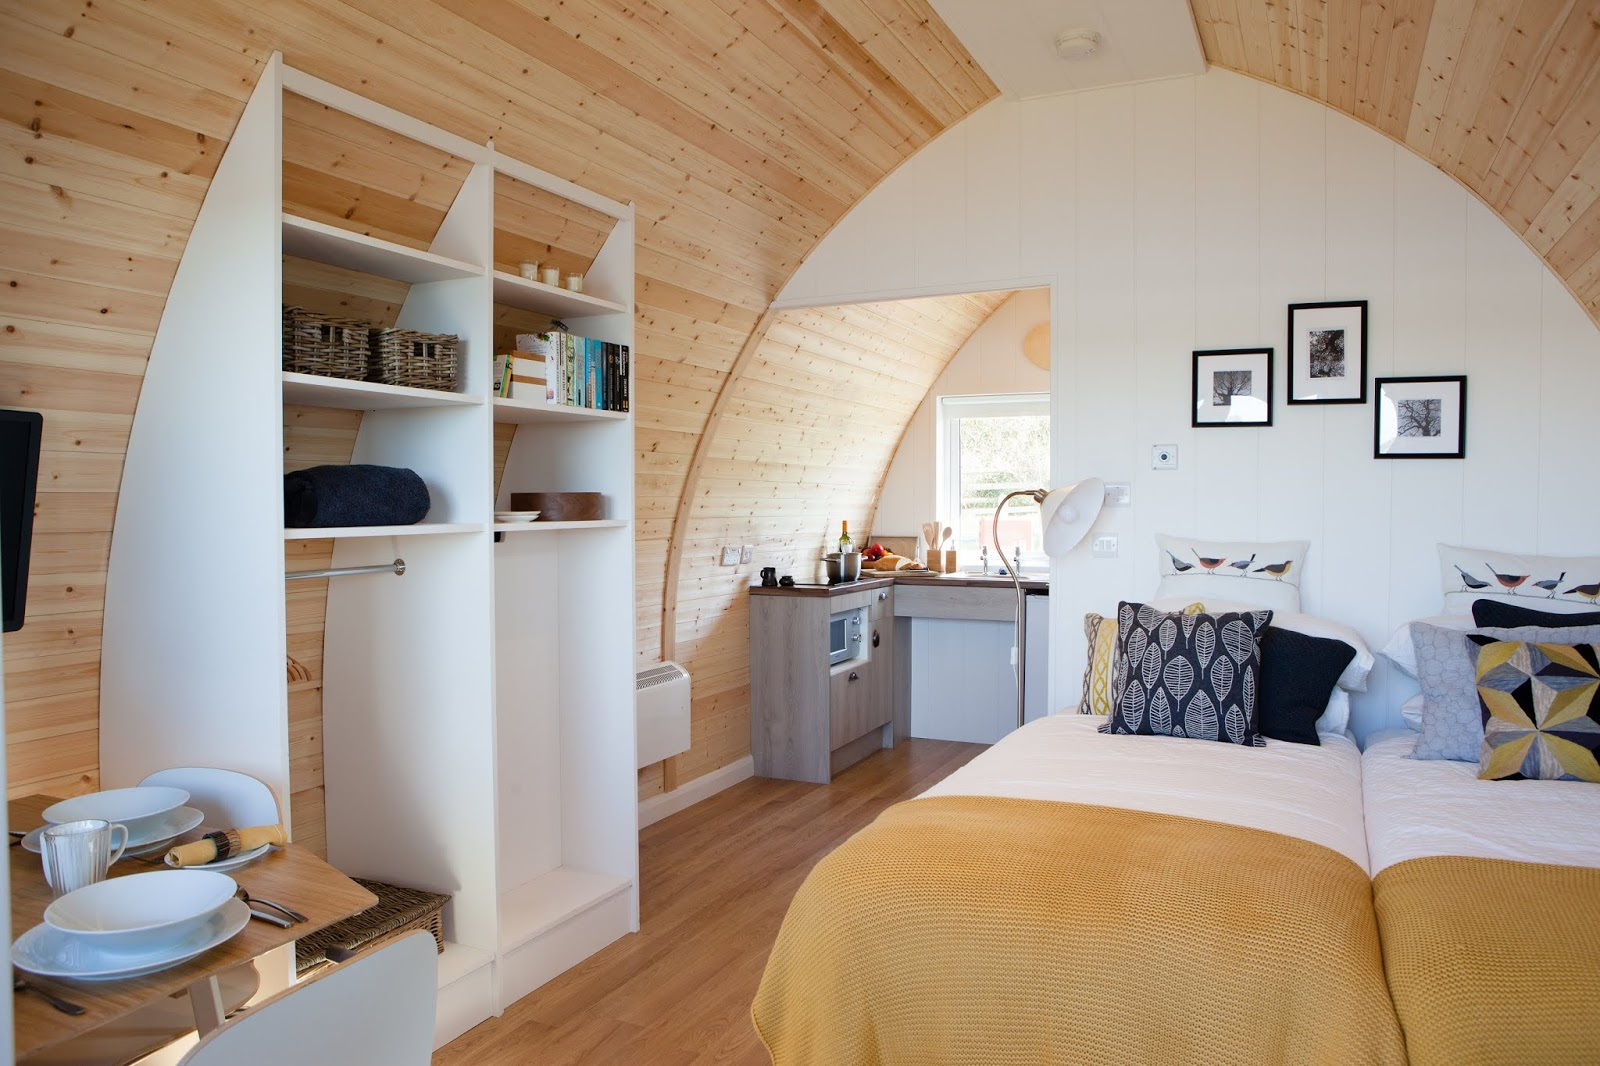 Omnipod Tiny Homes For Disabled Homeowners